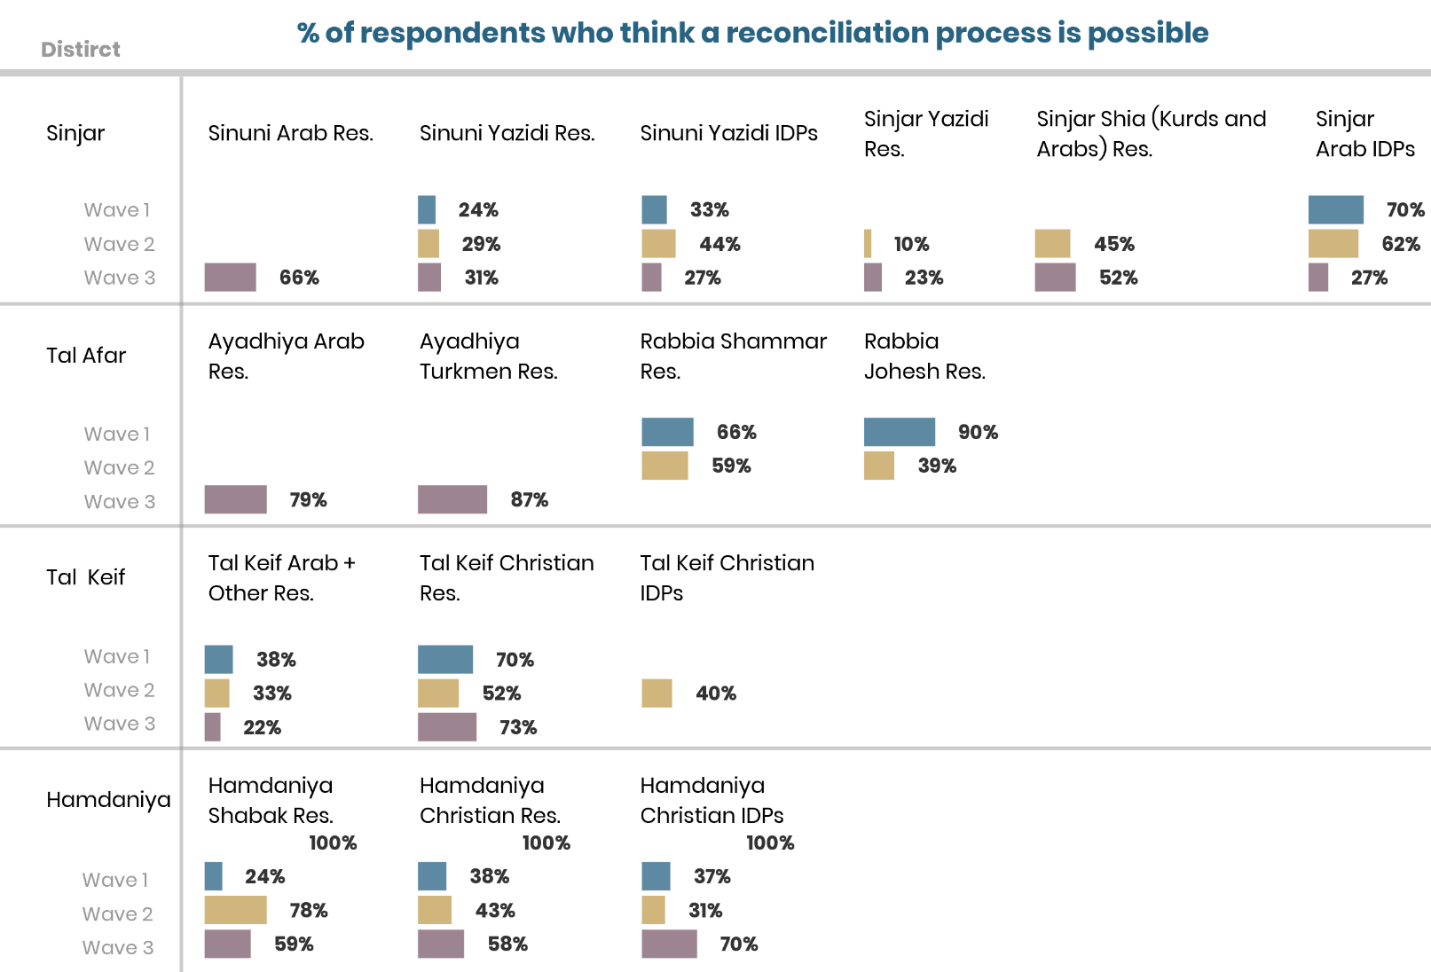 CSMF data shows that despite a belief in the need for reconciliation, many doubt that it is possible.